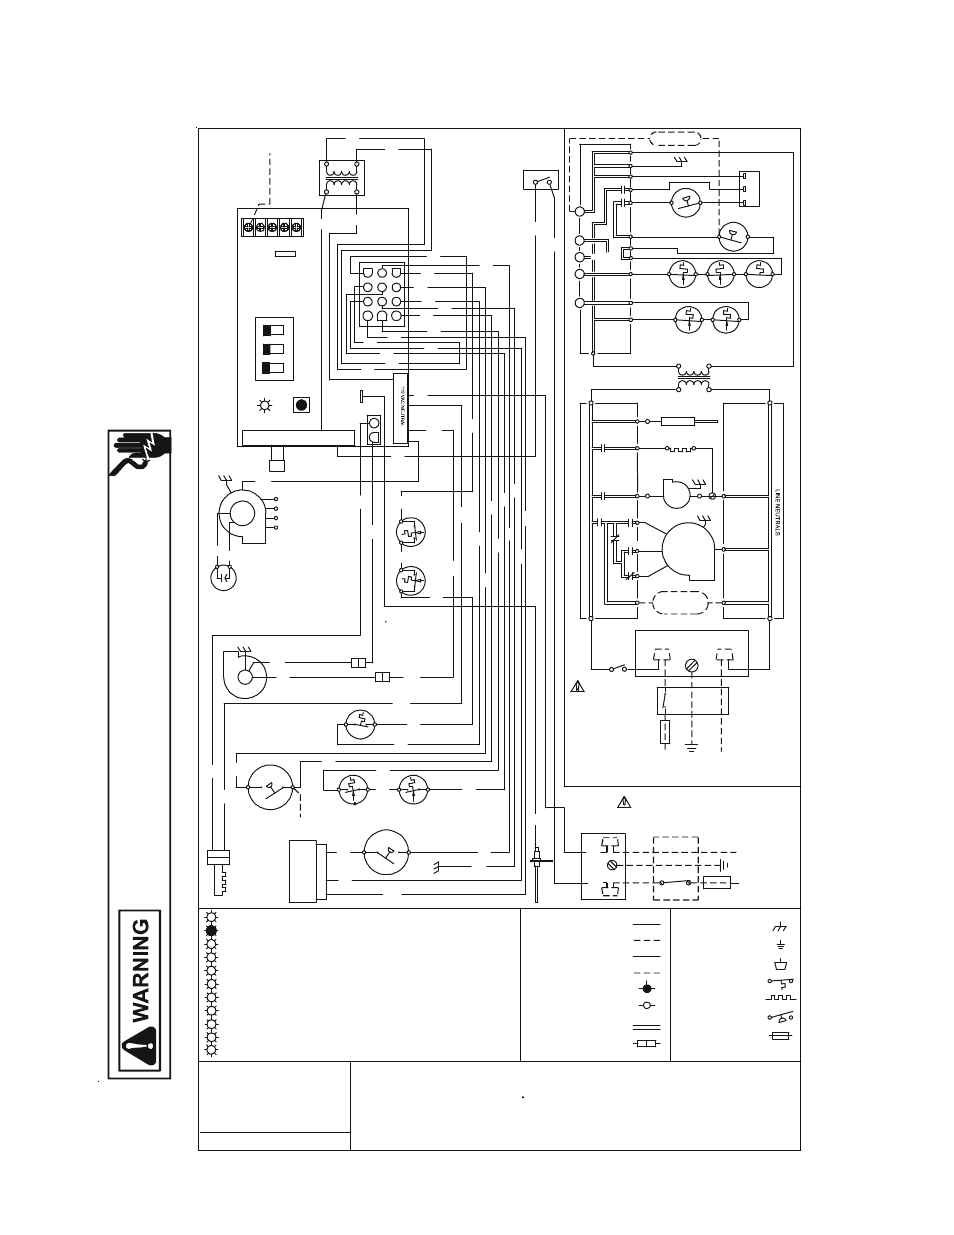 bard hvac wiring diagrams